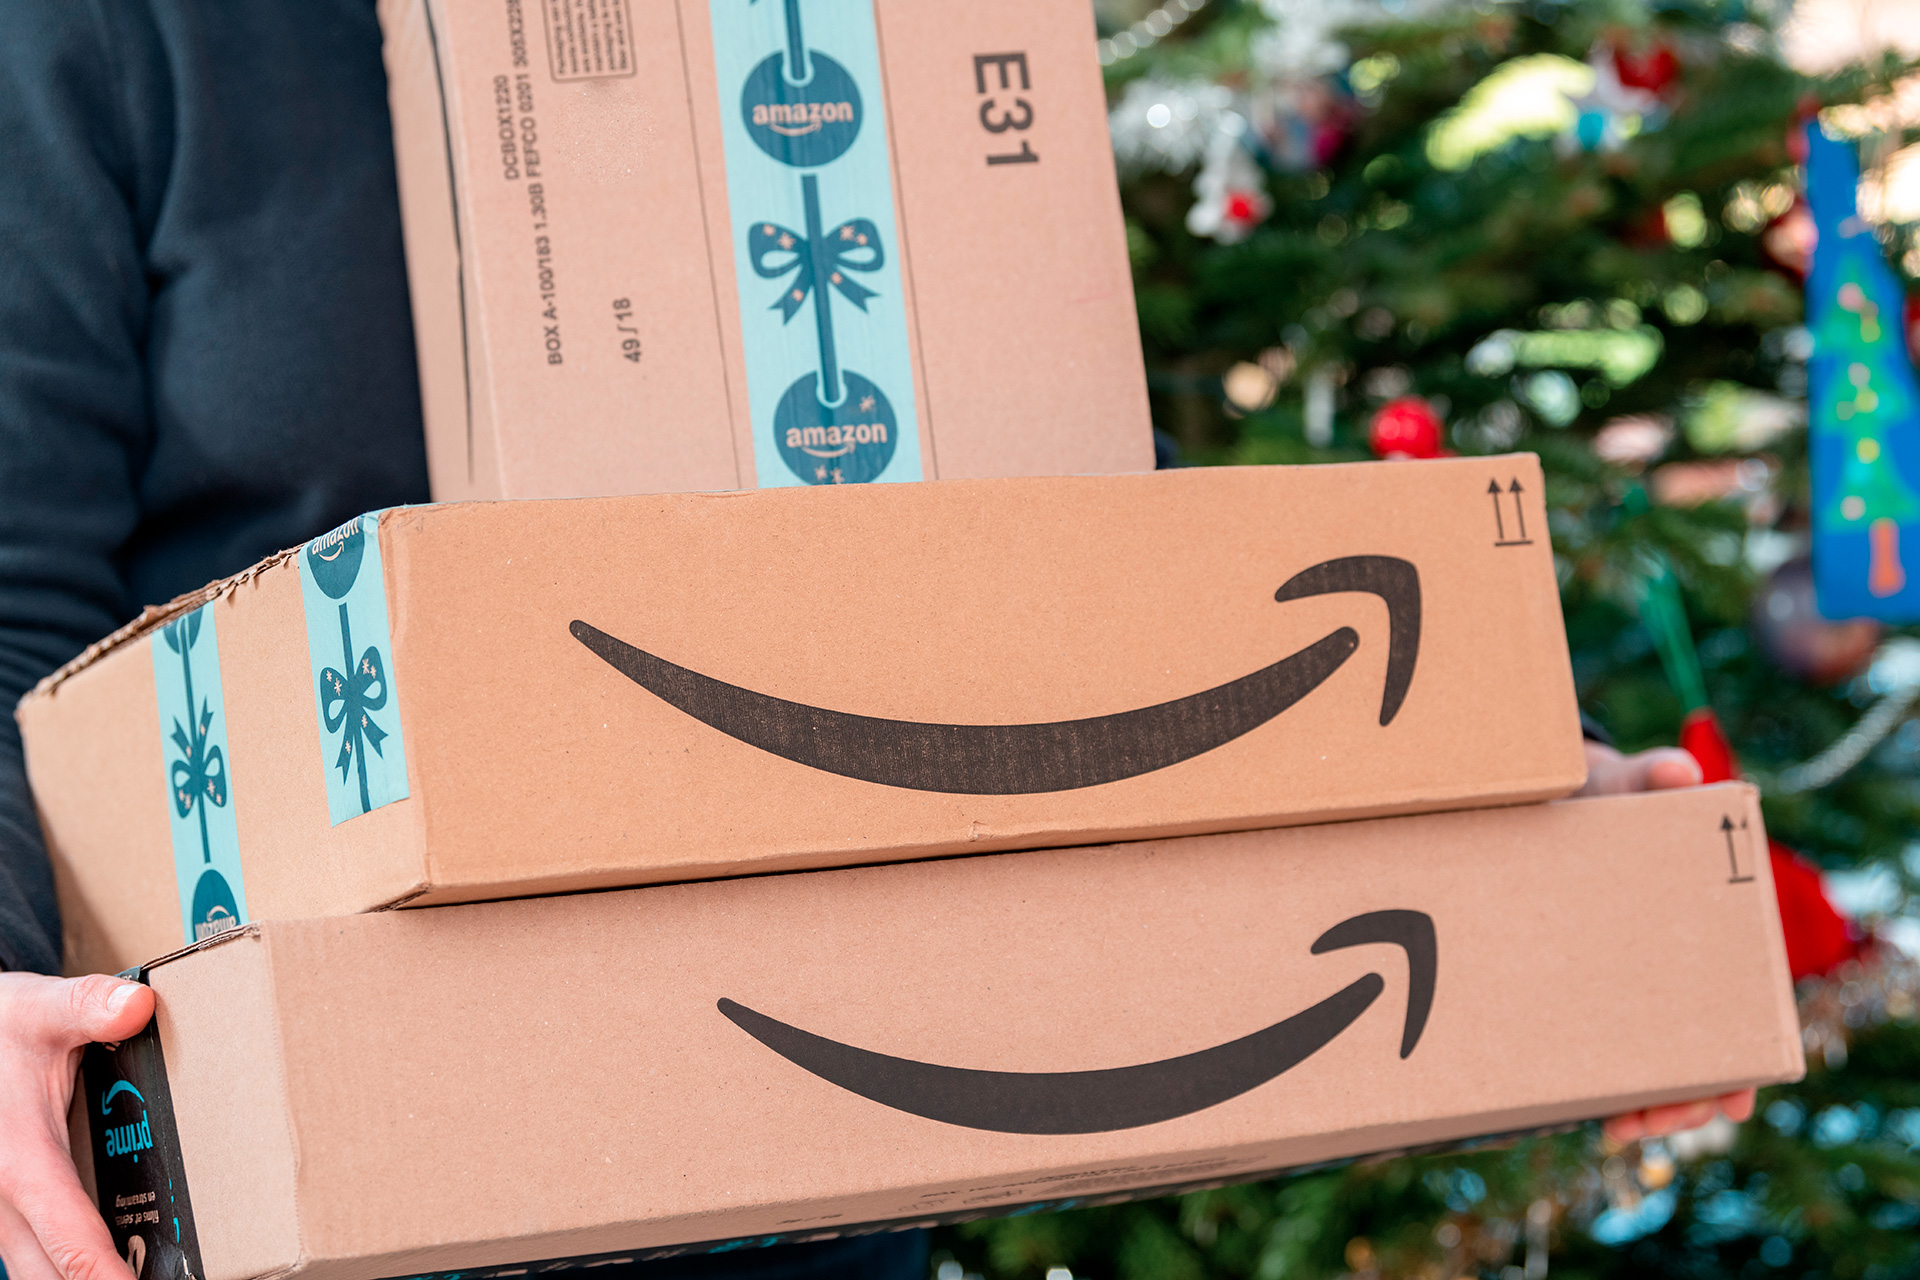 An Amazon Prime package delivered to a residential home for christmas